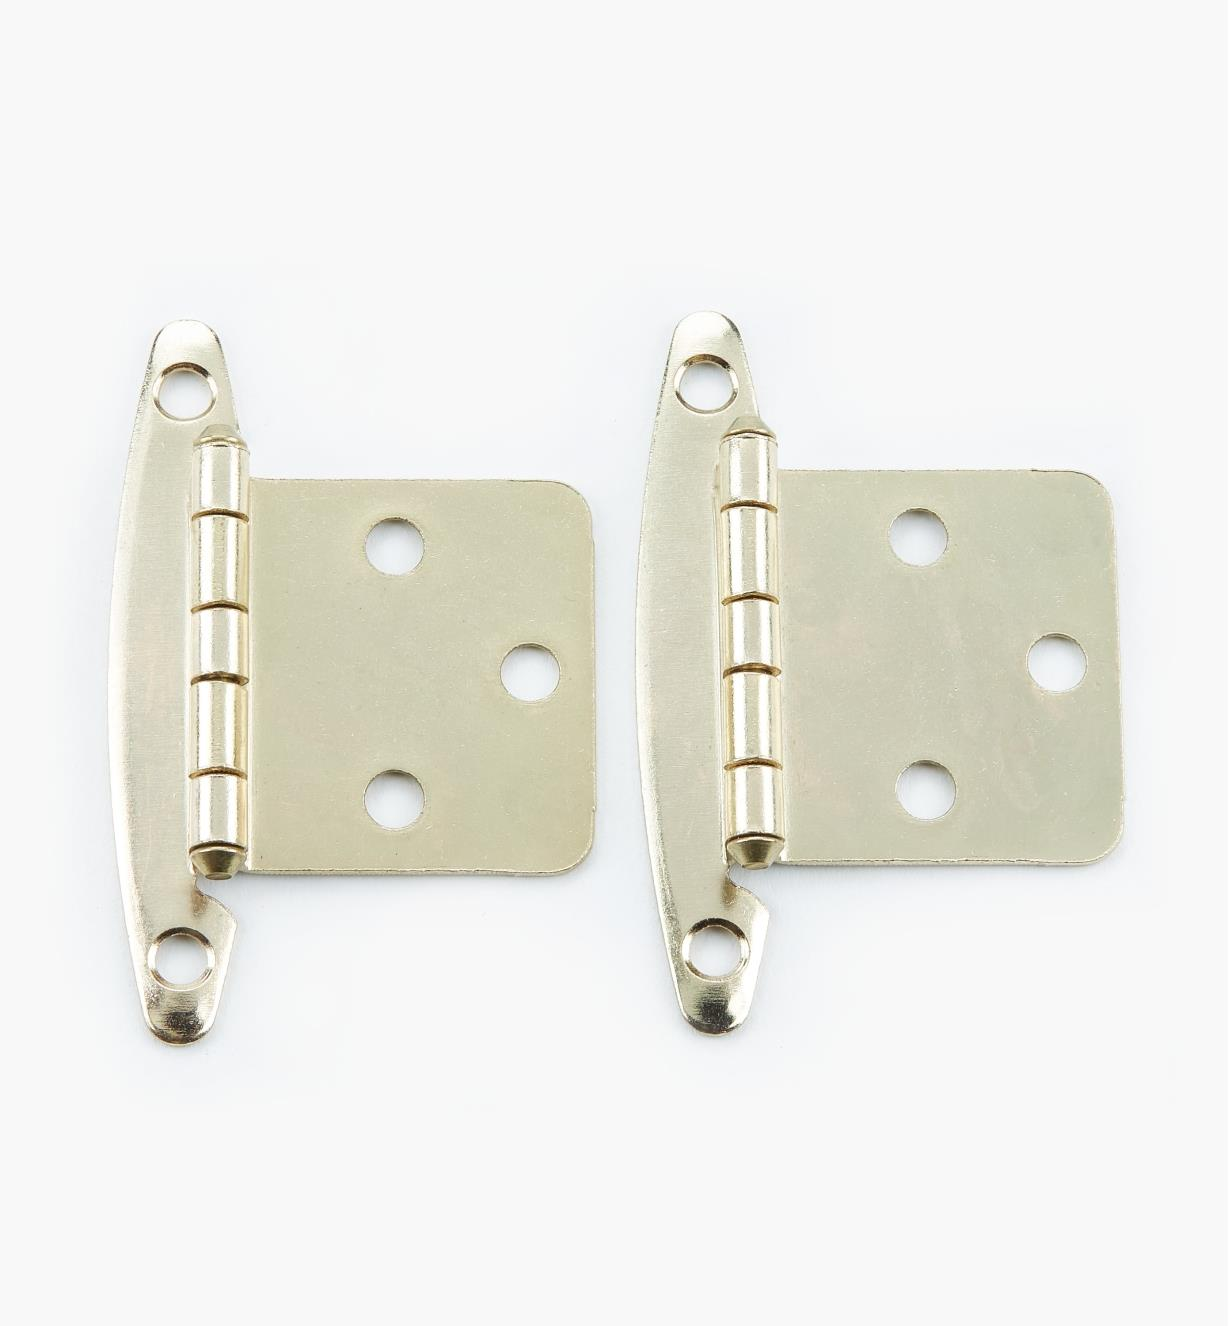 02H1303 - Brass Plate Flush Hinge, pair